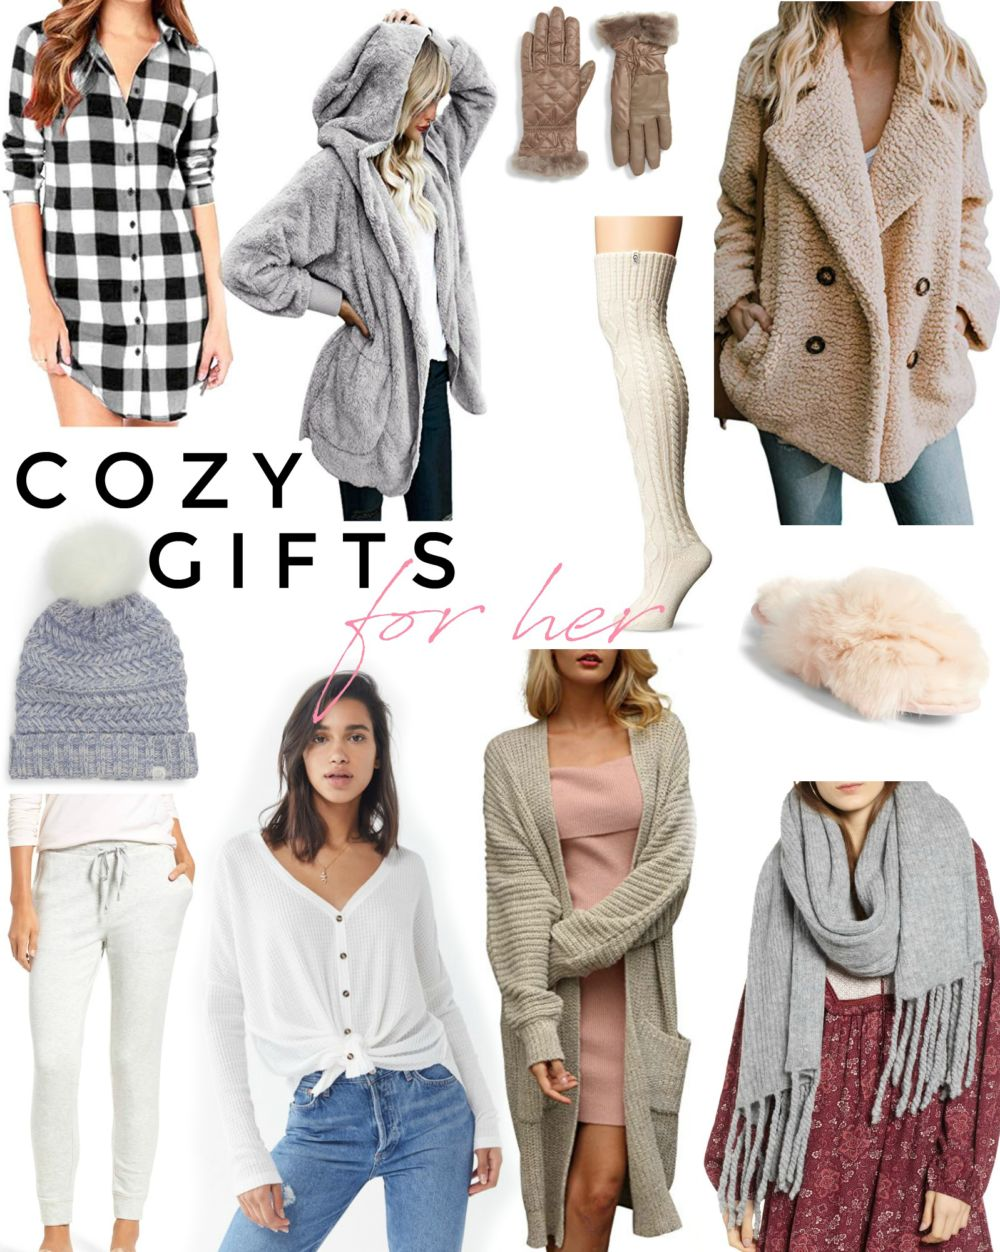 Cozy Gifts for Her!